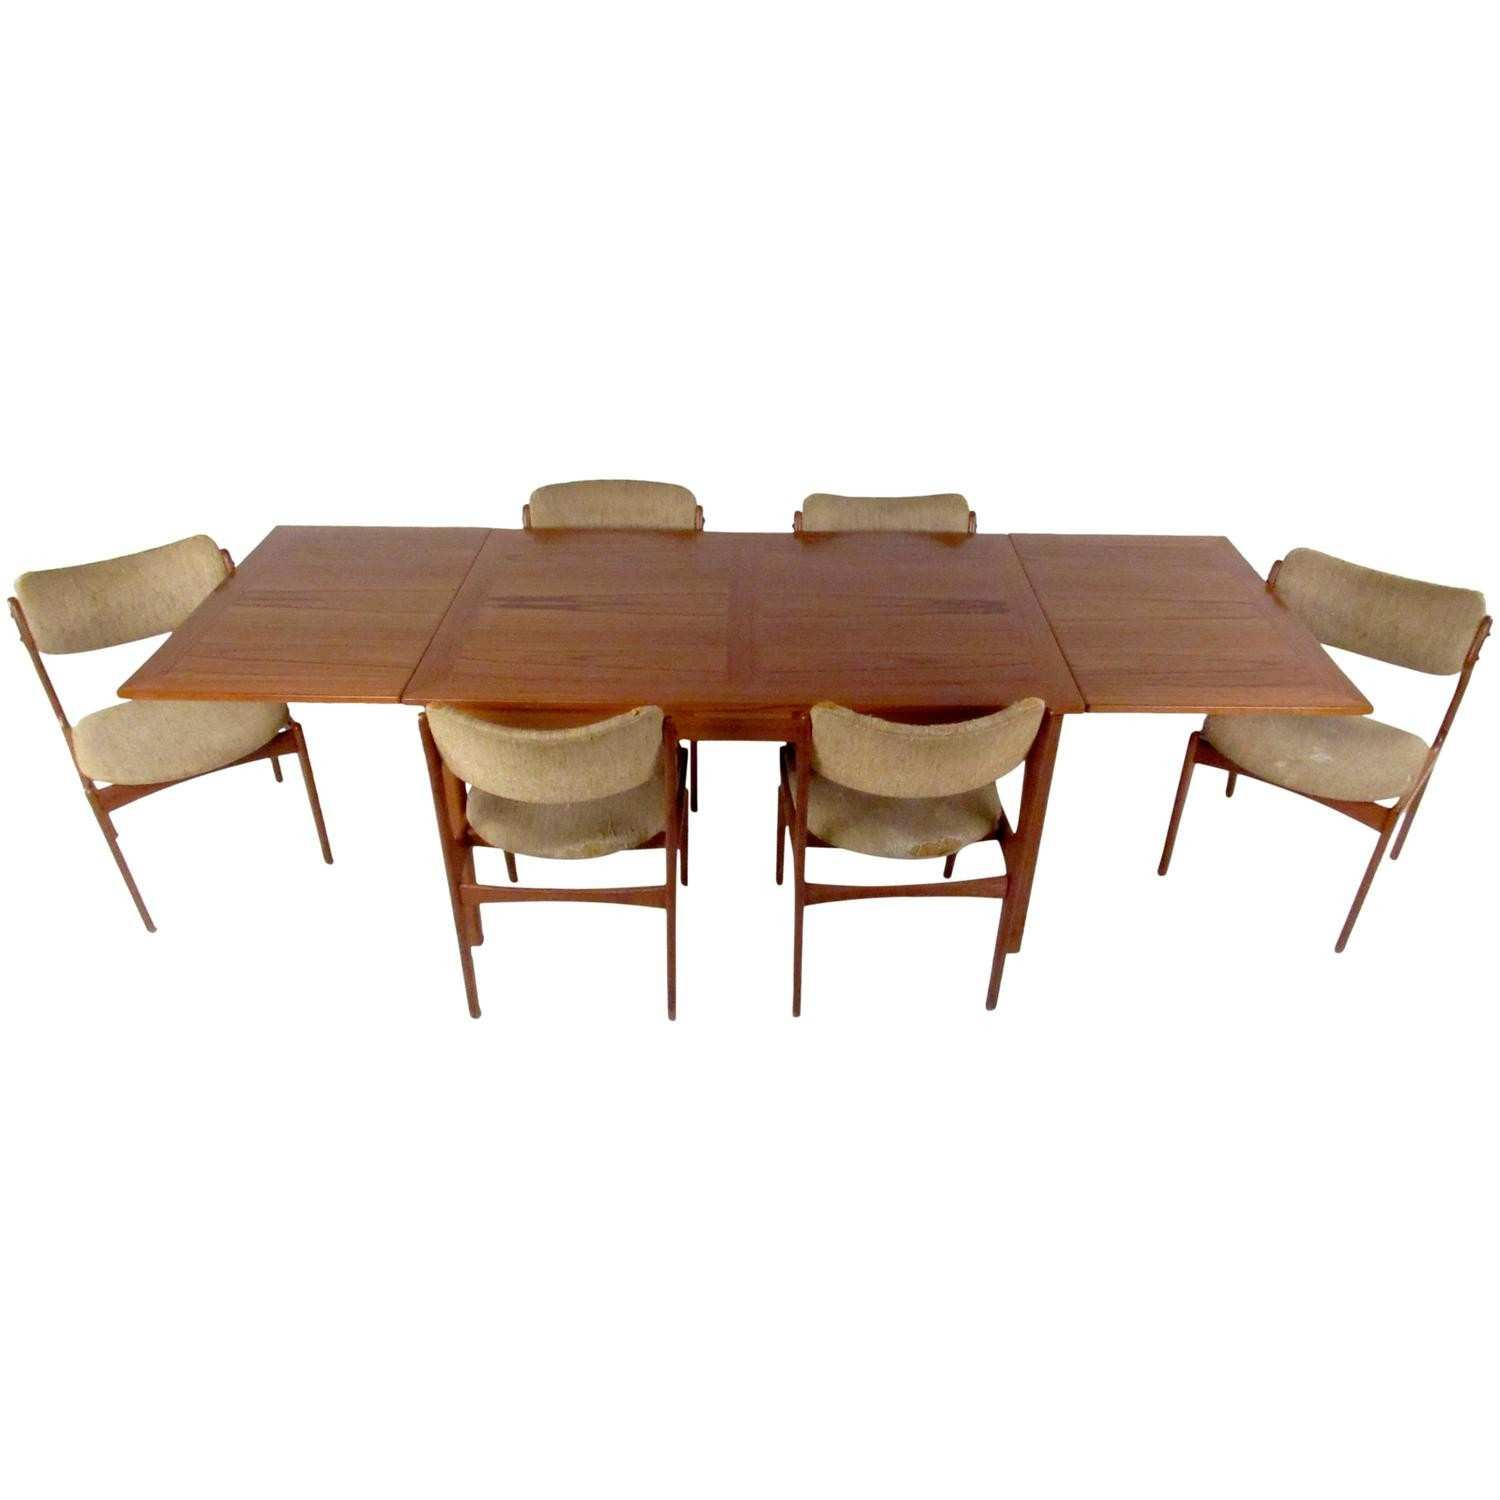 Modern Extension Dining Table Home Decor for Inspiration Mid Century